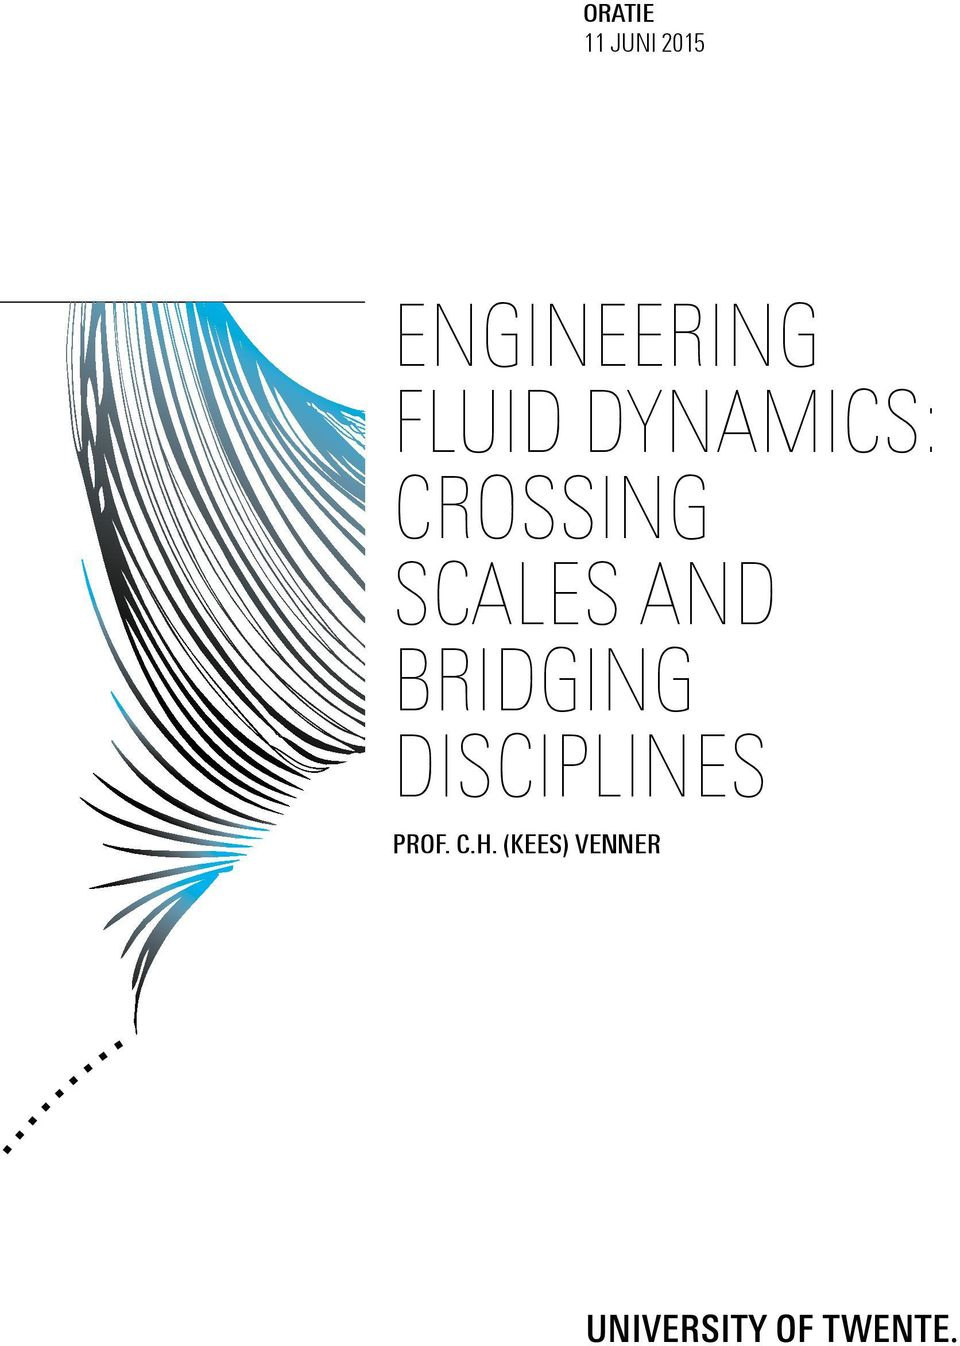 CROSSING SCALES AND BRIDGING